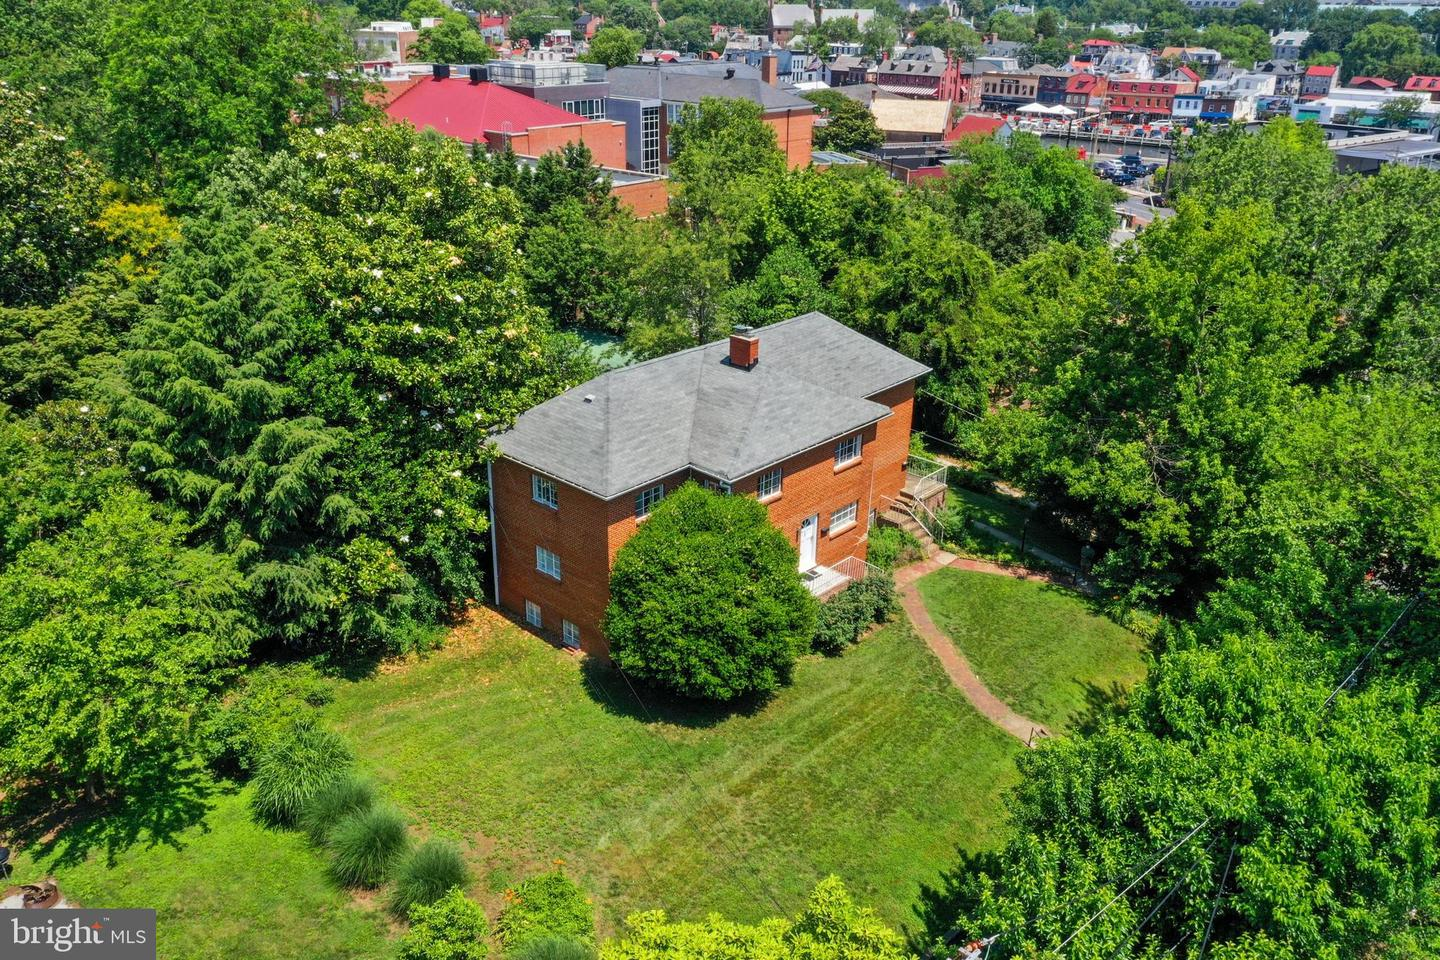 15 Newman St                                                                               Annapolis                                                                      , MD - $1,799,999